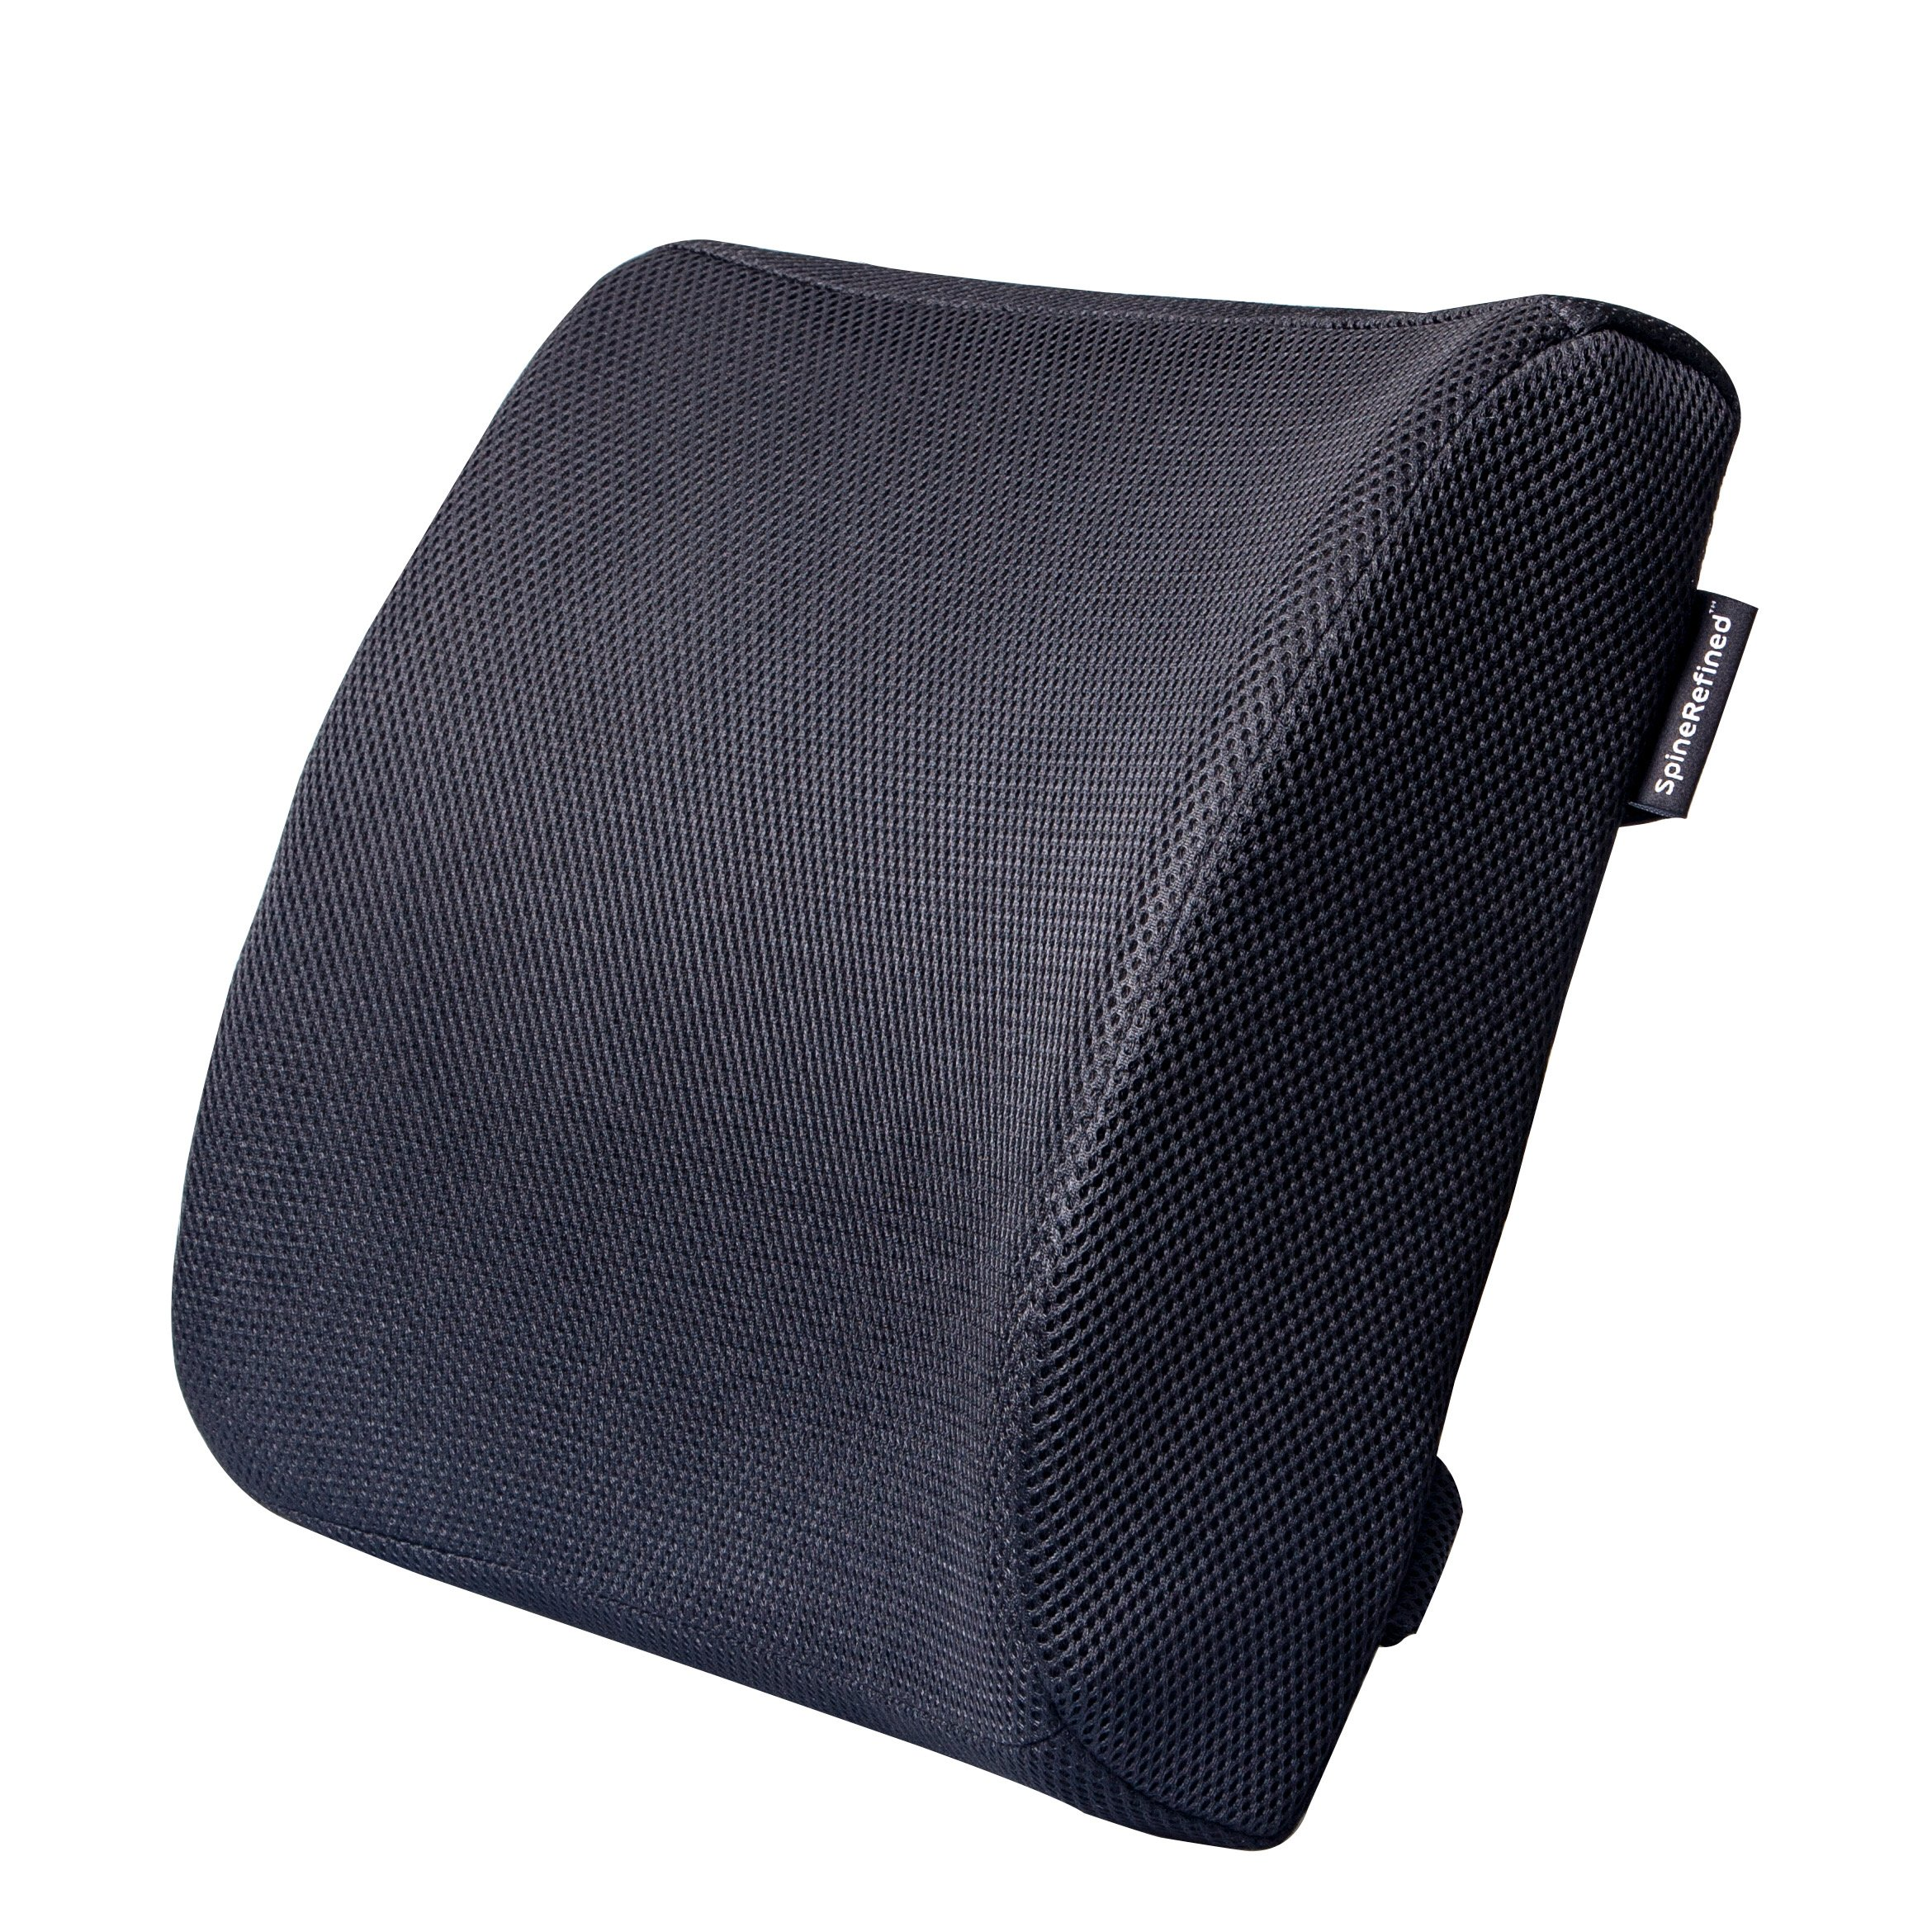 Lumbar Back Support Pillow by SpineRefined - Premium Memory Foam Orthopedic Cushion Provides Optimal Spine Comfort for Car, Office Chair, Couch, or Recliner - Breathable Machine Washable 3D Mesh Cover